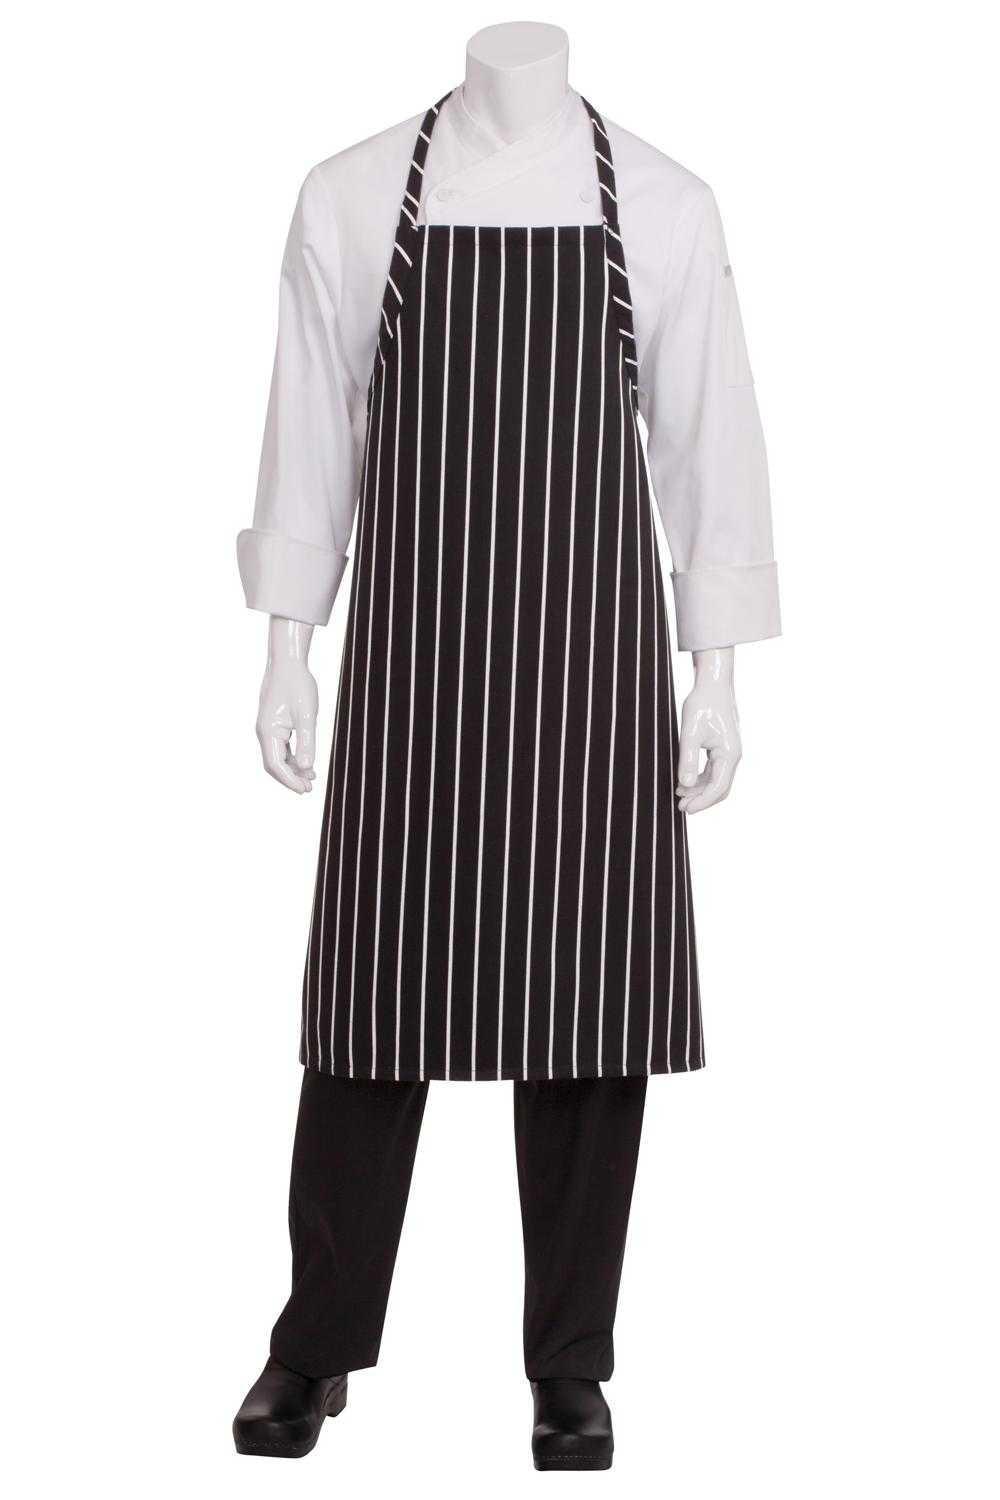 dba0c0ec9d4 Chef clothing in Sacramento including waiting staff uniforms